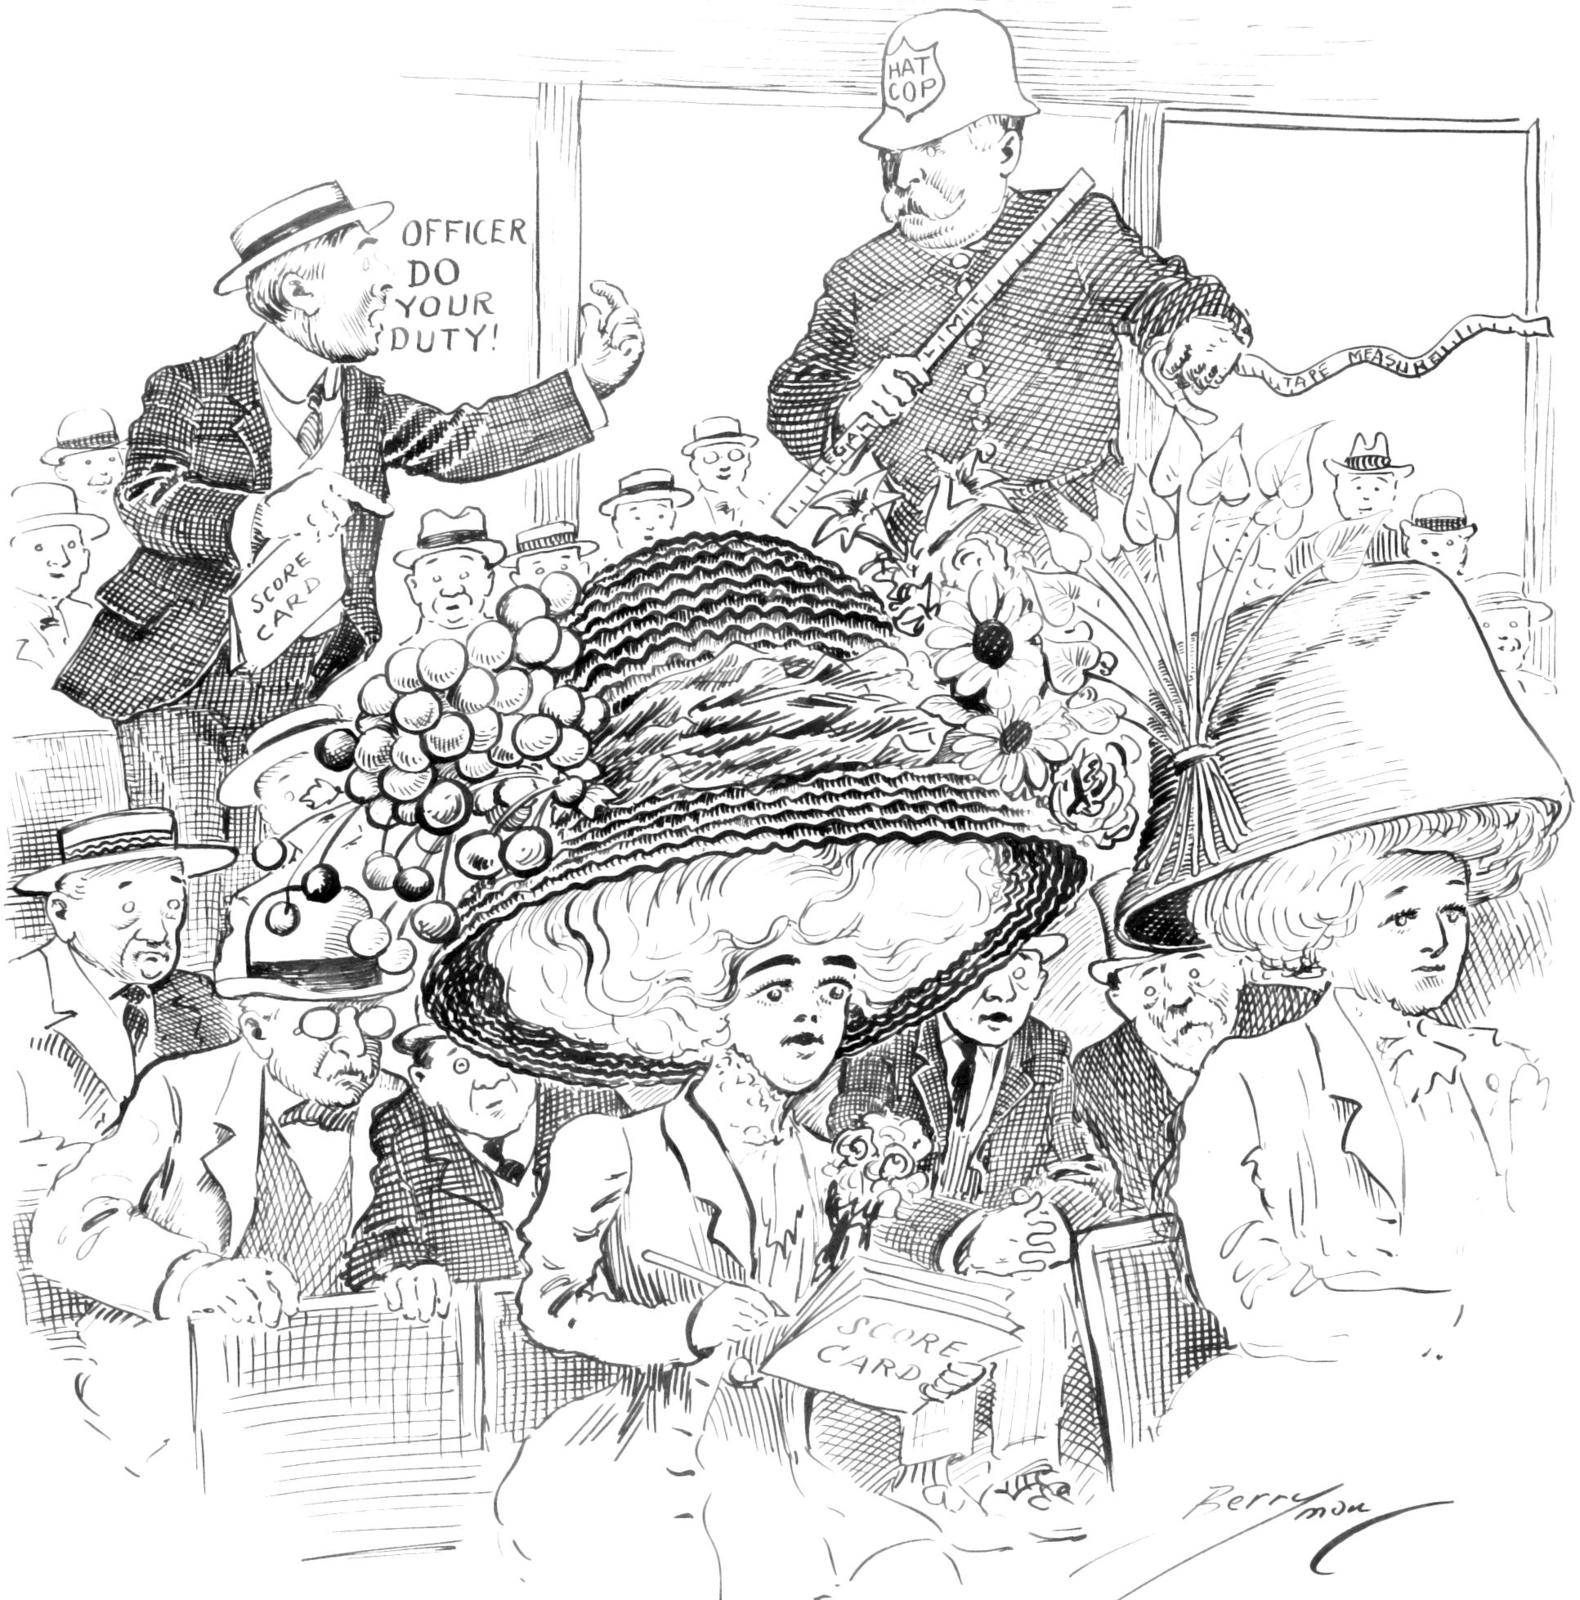 News Note: A Bill Has Been Introduced in the Illinois Legislature Limiting Women's Hats to a Diameter of Eighteen Inches